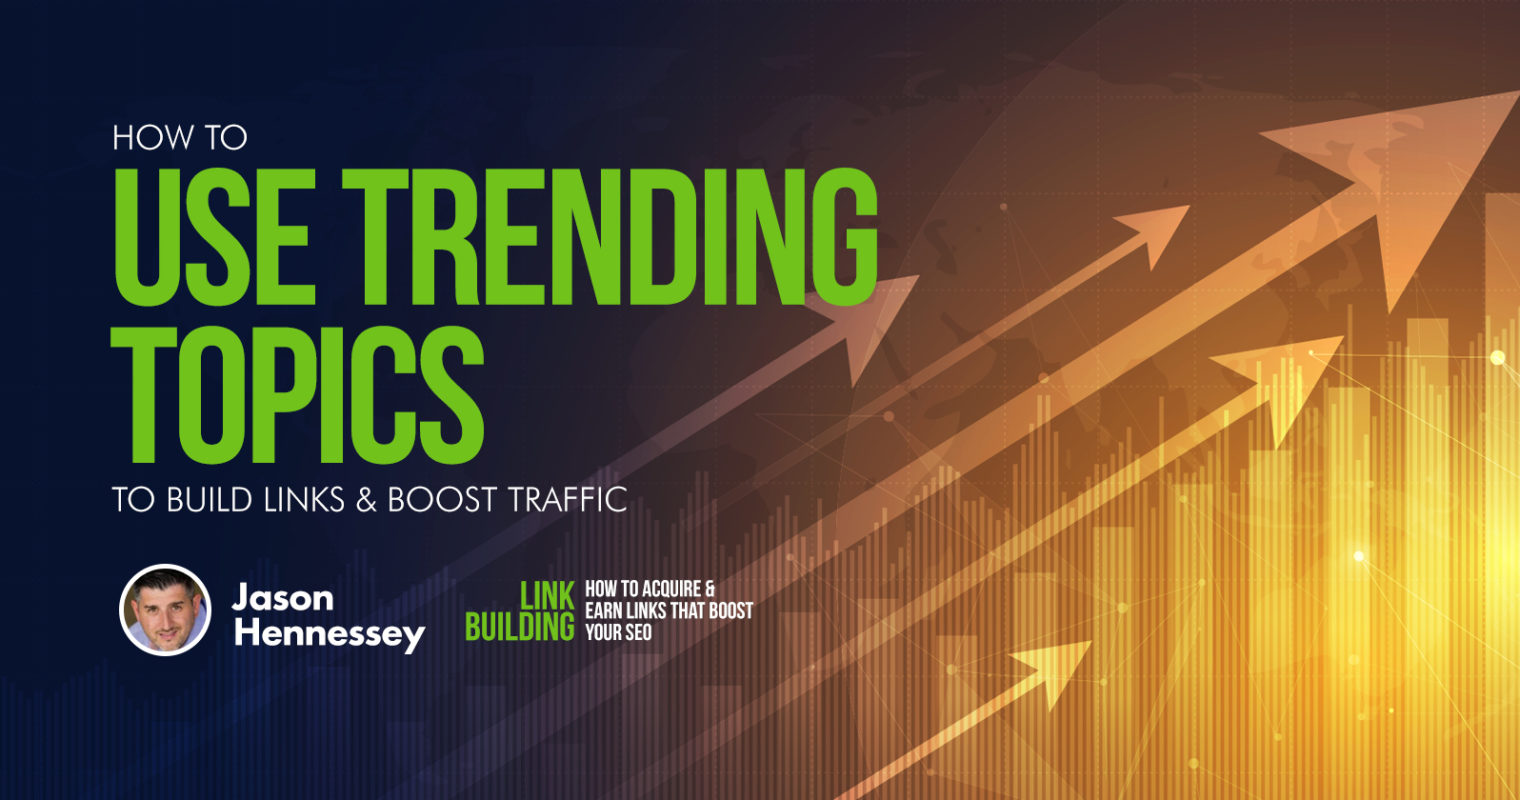 https://res.cloudinary.com/dpyy9uysx/image/upload/v1559020827/seo/how-to-use-trending-topics-to-build-links-boost-traffic.jpg